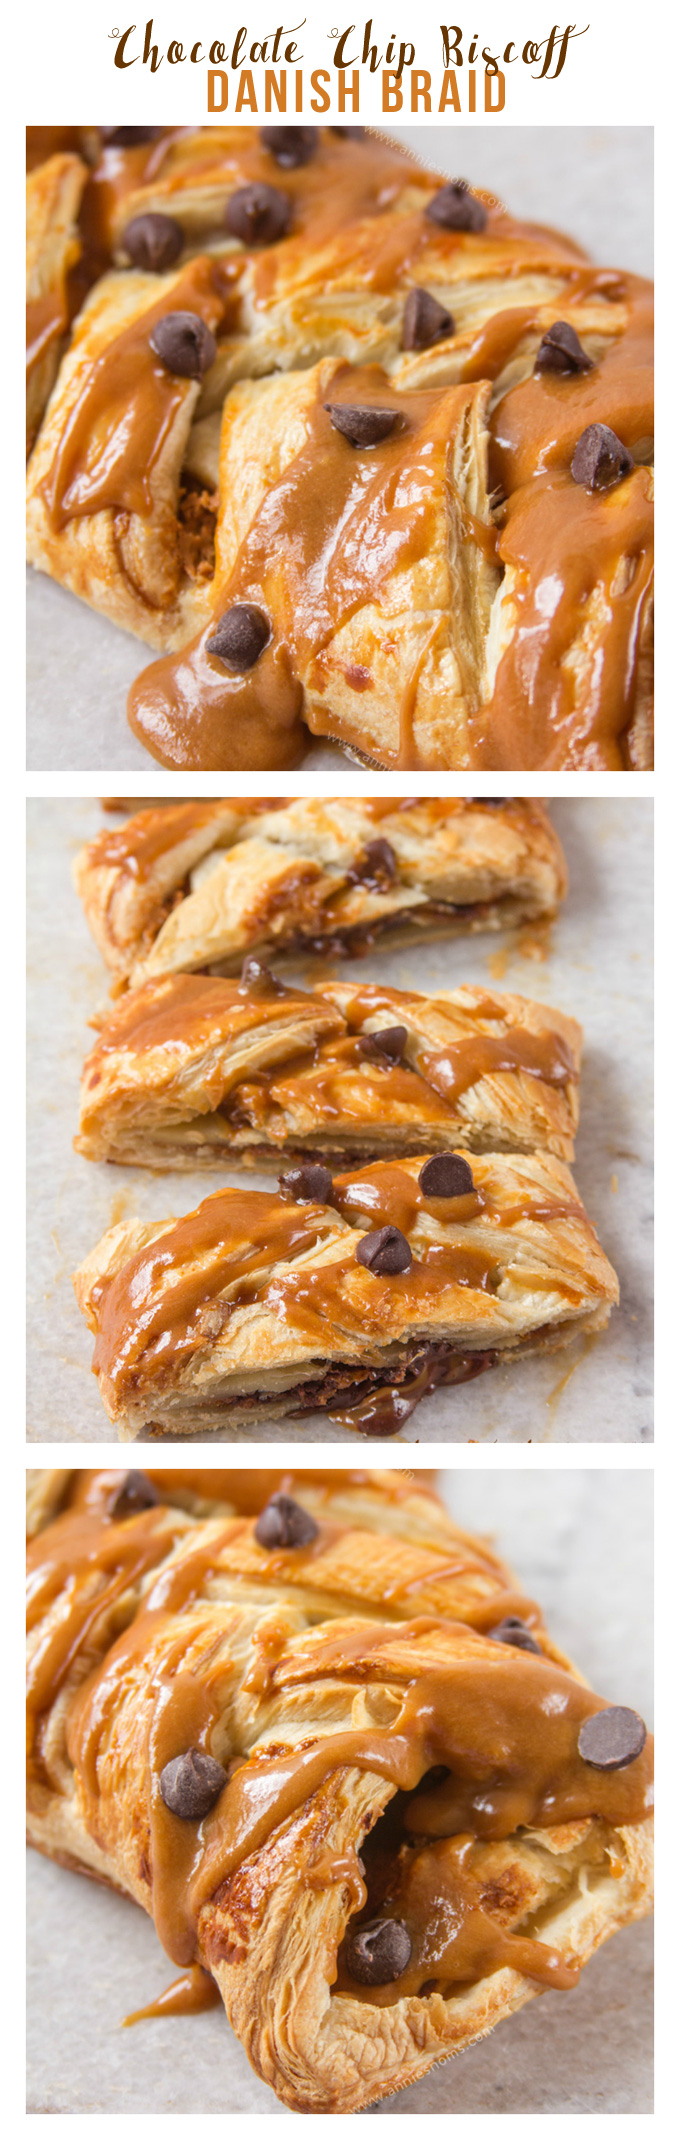 This easy Chocolate Chip Biscoff Danish Braid is ready in 30 minutes and tastes utterly divine. Rich chocolate cuts through the sweet, spicy Biscoff to create a gooey centre to the crisp, flaky puff pastry braid. A heavenly dessert or super decadent breakfast!